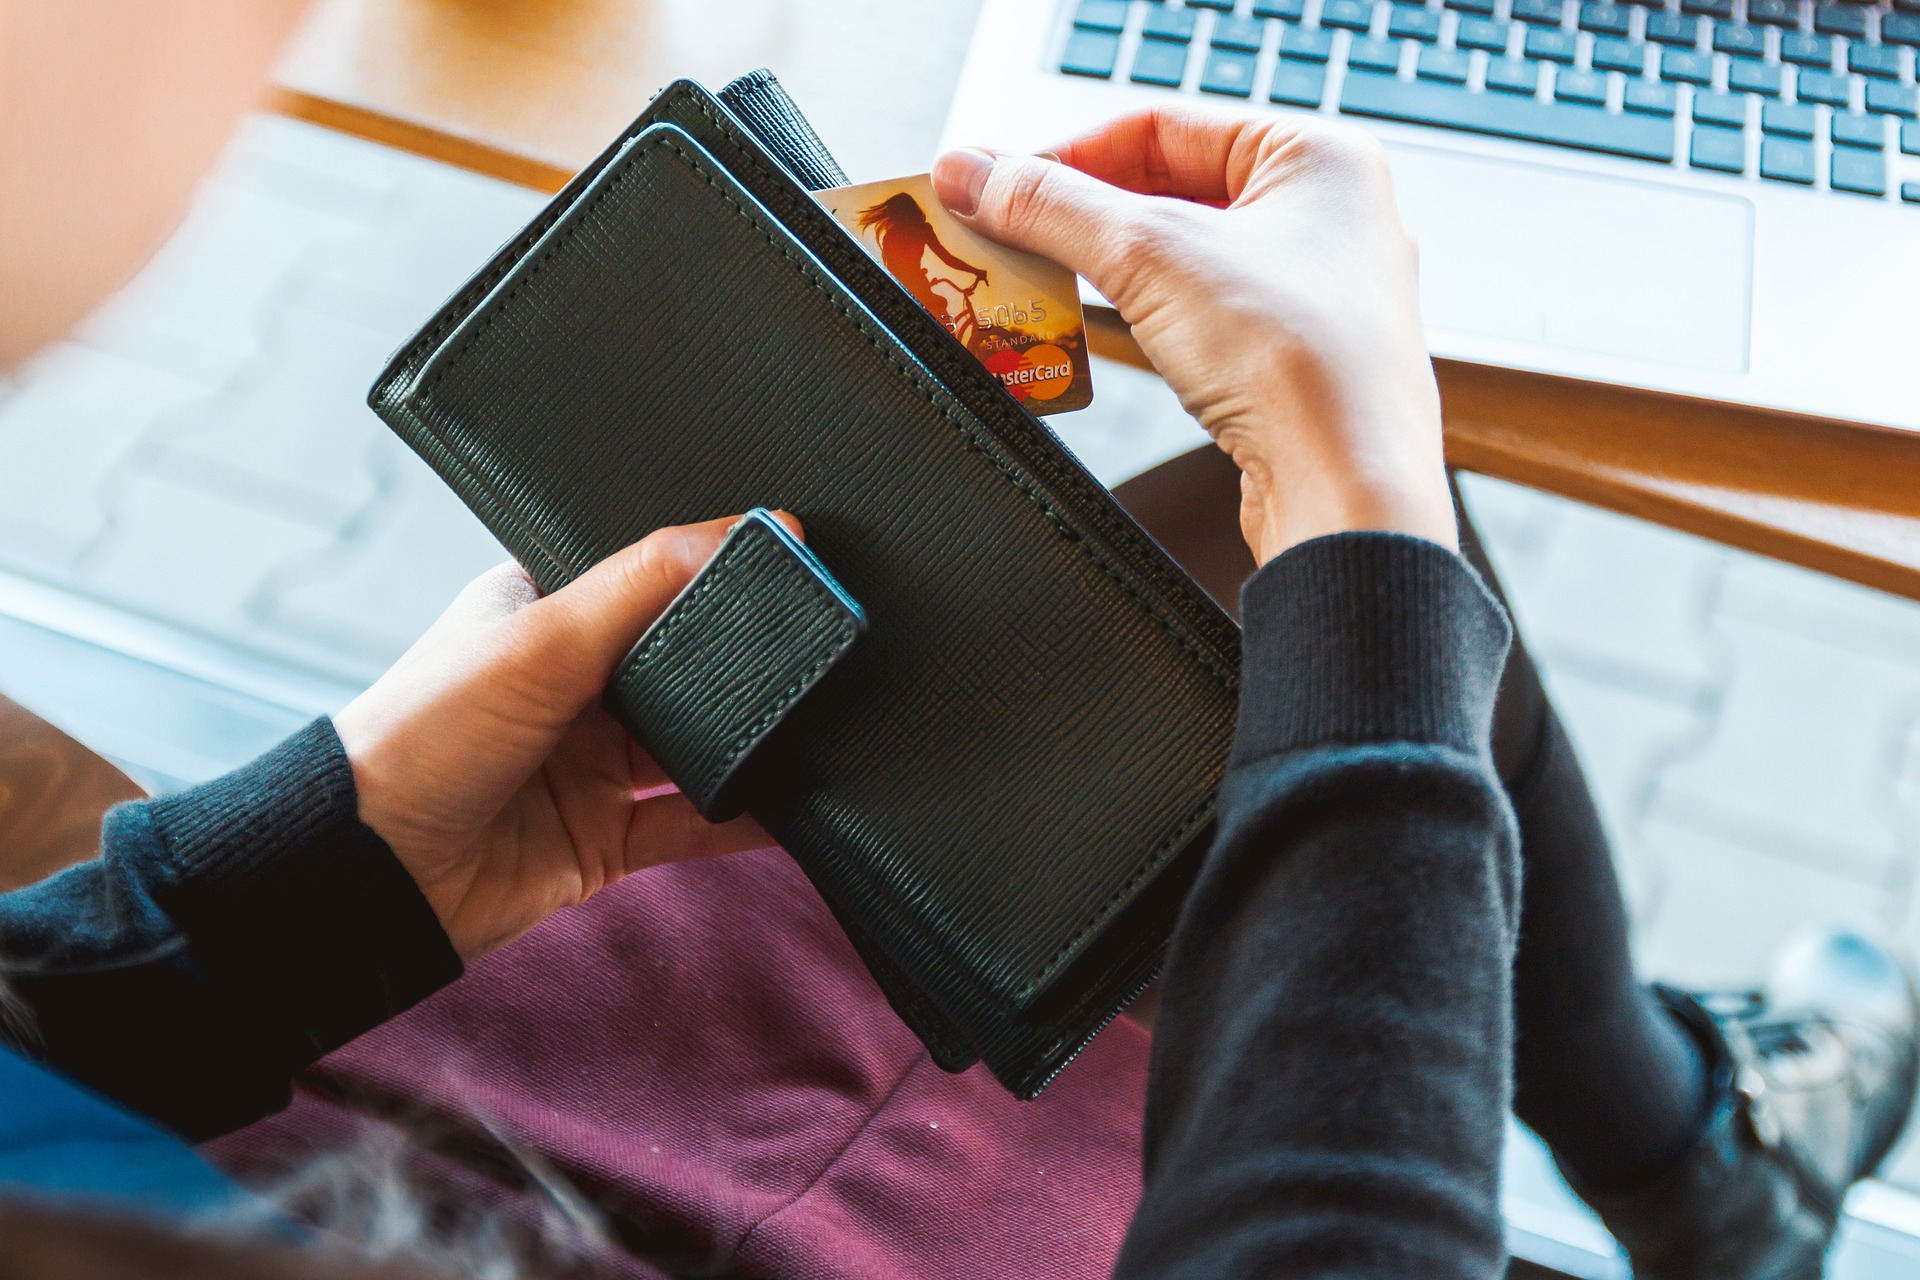 A woman removing a credit card from her wallet